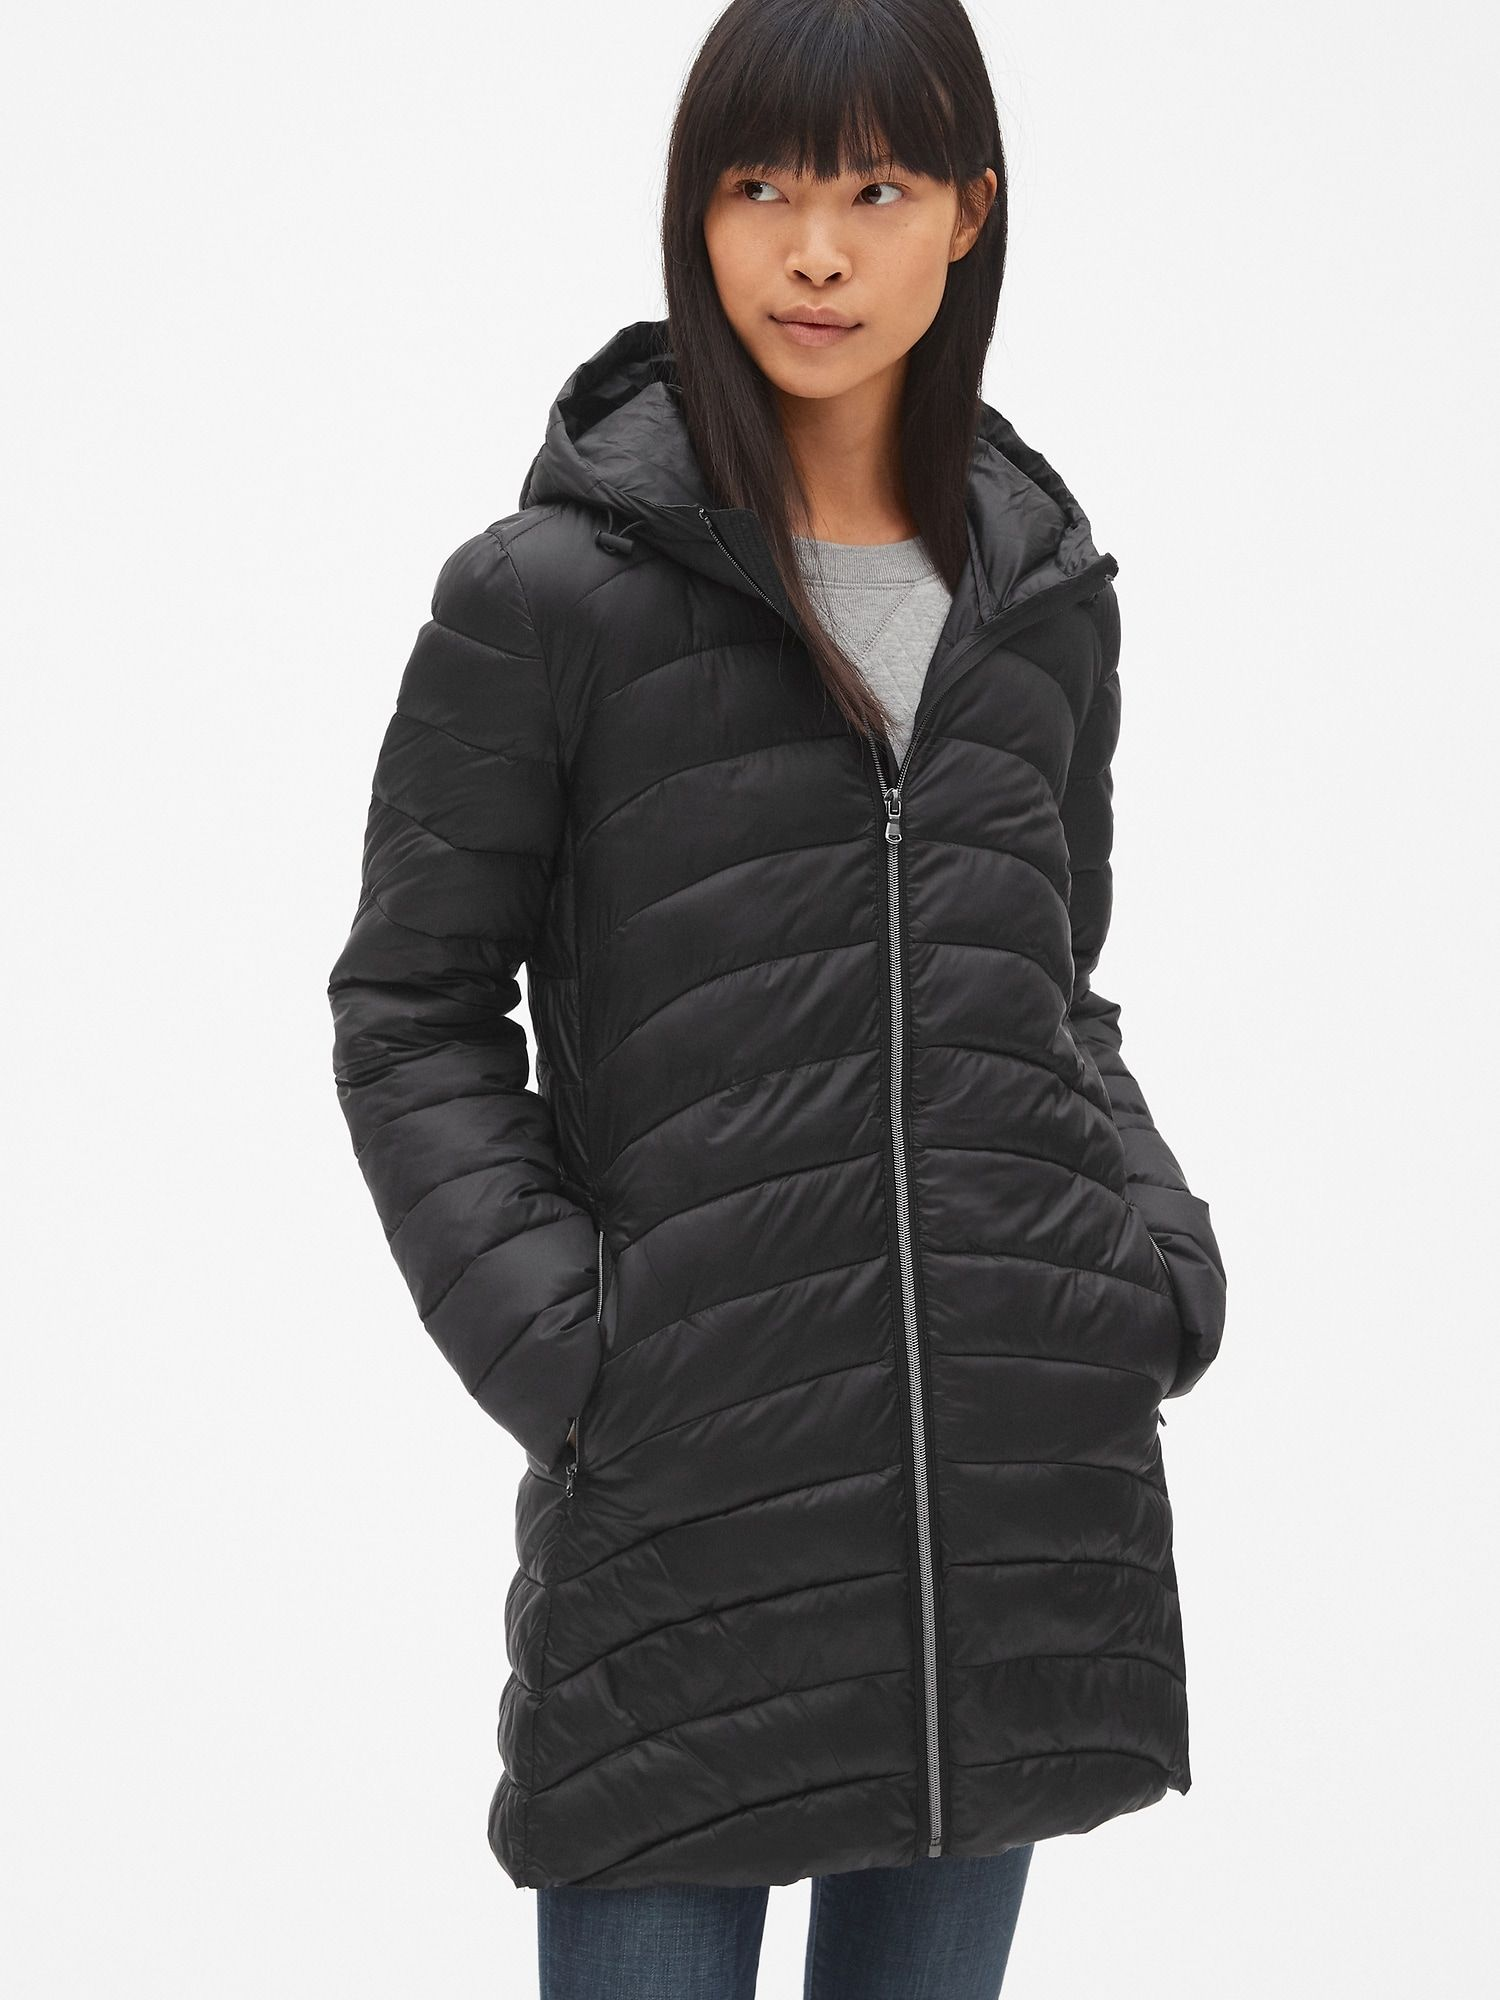 fcbf7939b ColdControl Lightweight Hooded Puffer Coat | Gap | Outerwear ...